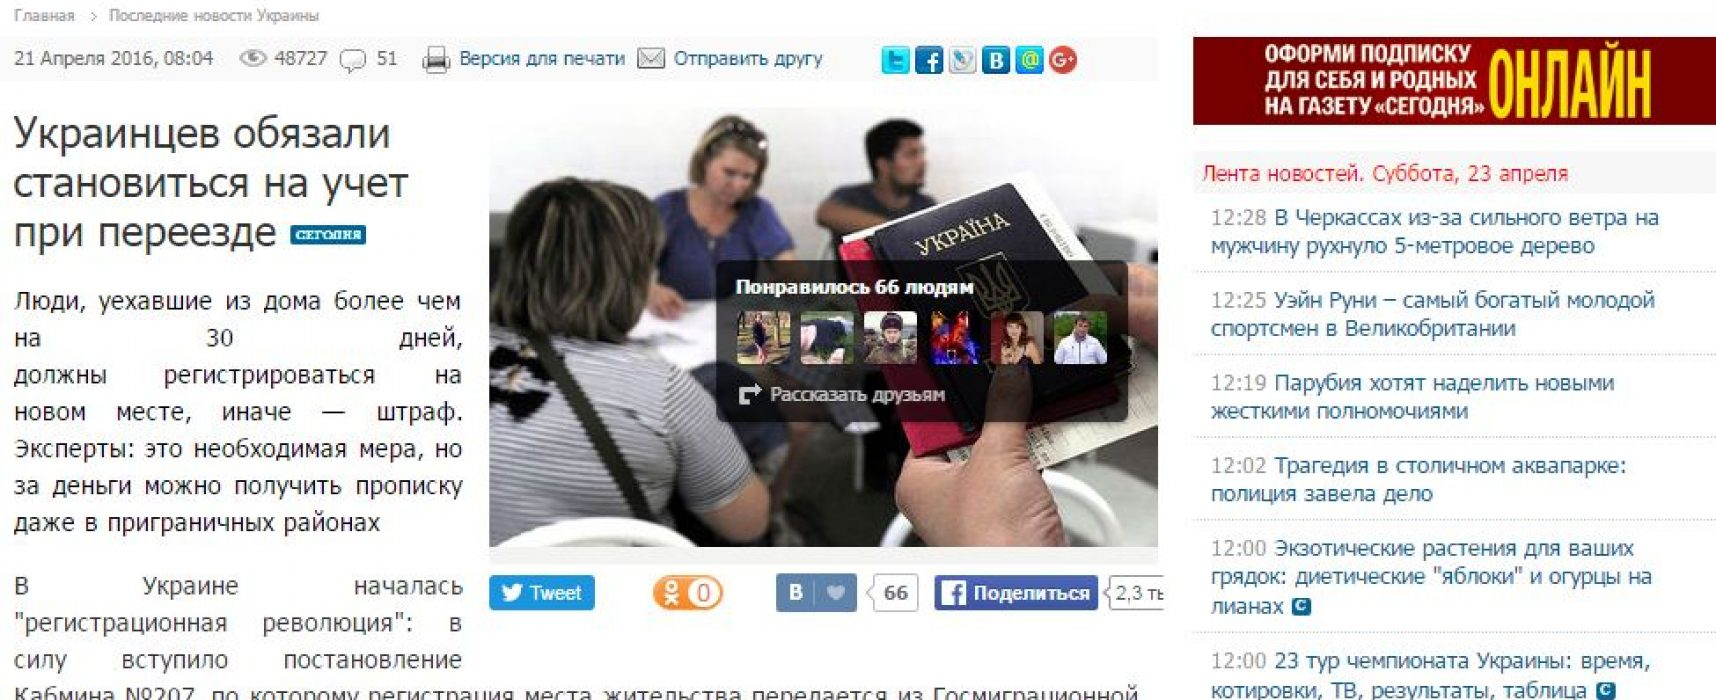 Fake: Not Living in Officially Registered Residence in Ukraine Subject to Penalties